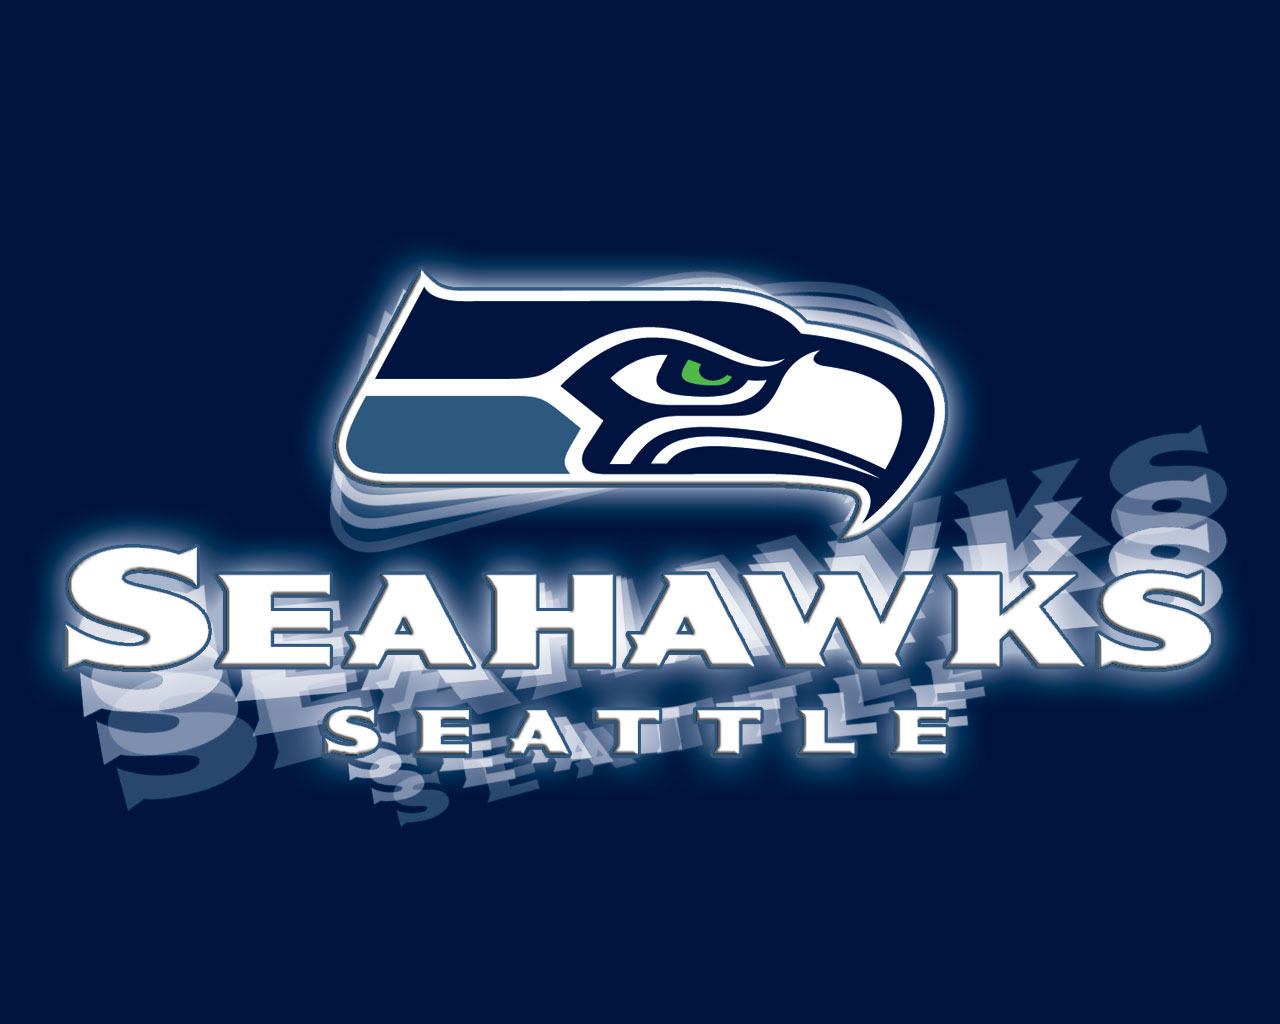 Seattle Seahawks Schedule Wallpaper   1280x1024